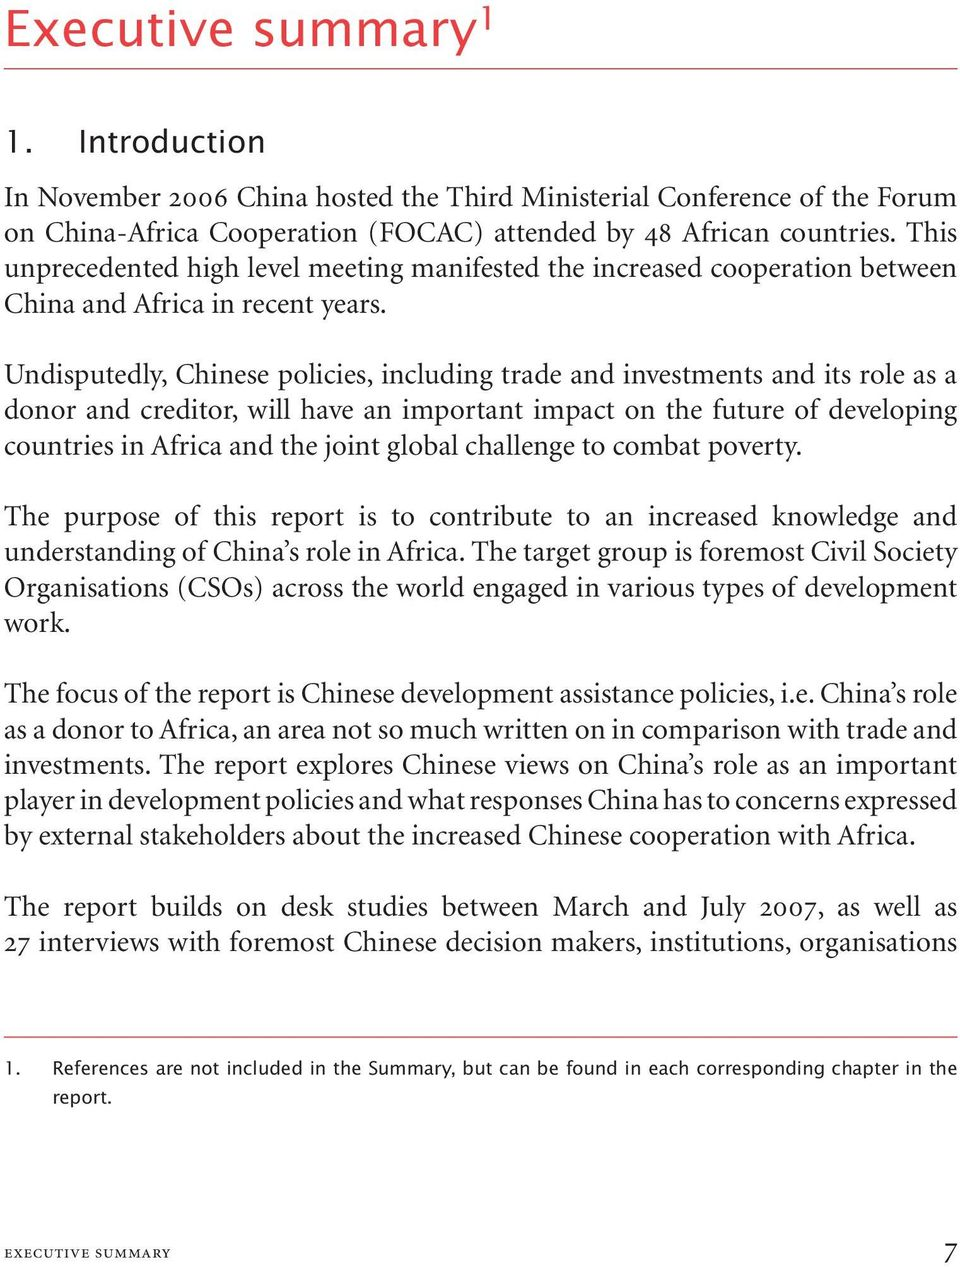 Undisputedly, Chinese policies, including trade and investments and its role as a donor and creditor, will have an important impact on the future of developing countries in Africa and the joint